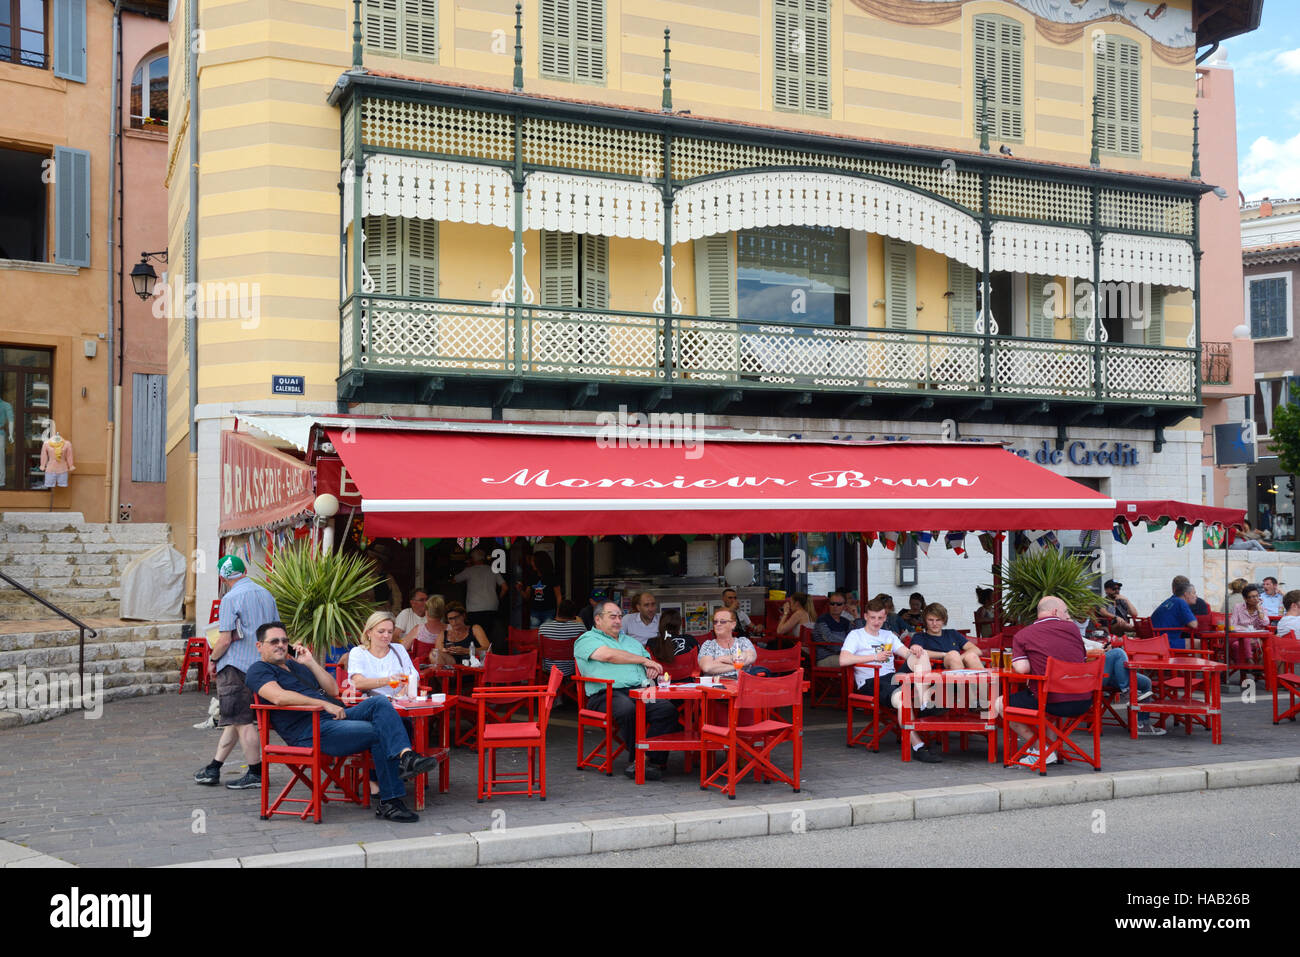 Brasserie or Pavement Café and Customers Cassis Provence France - Stock Image